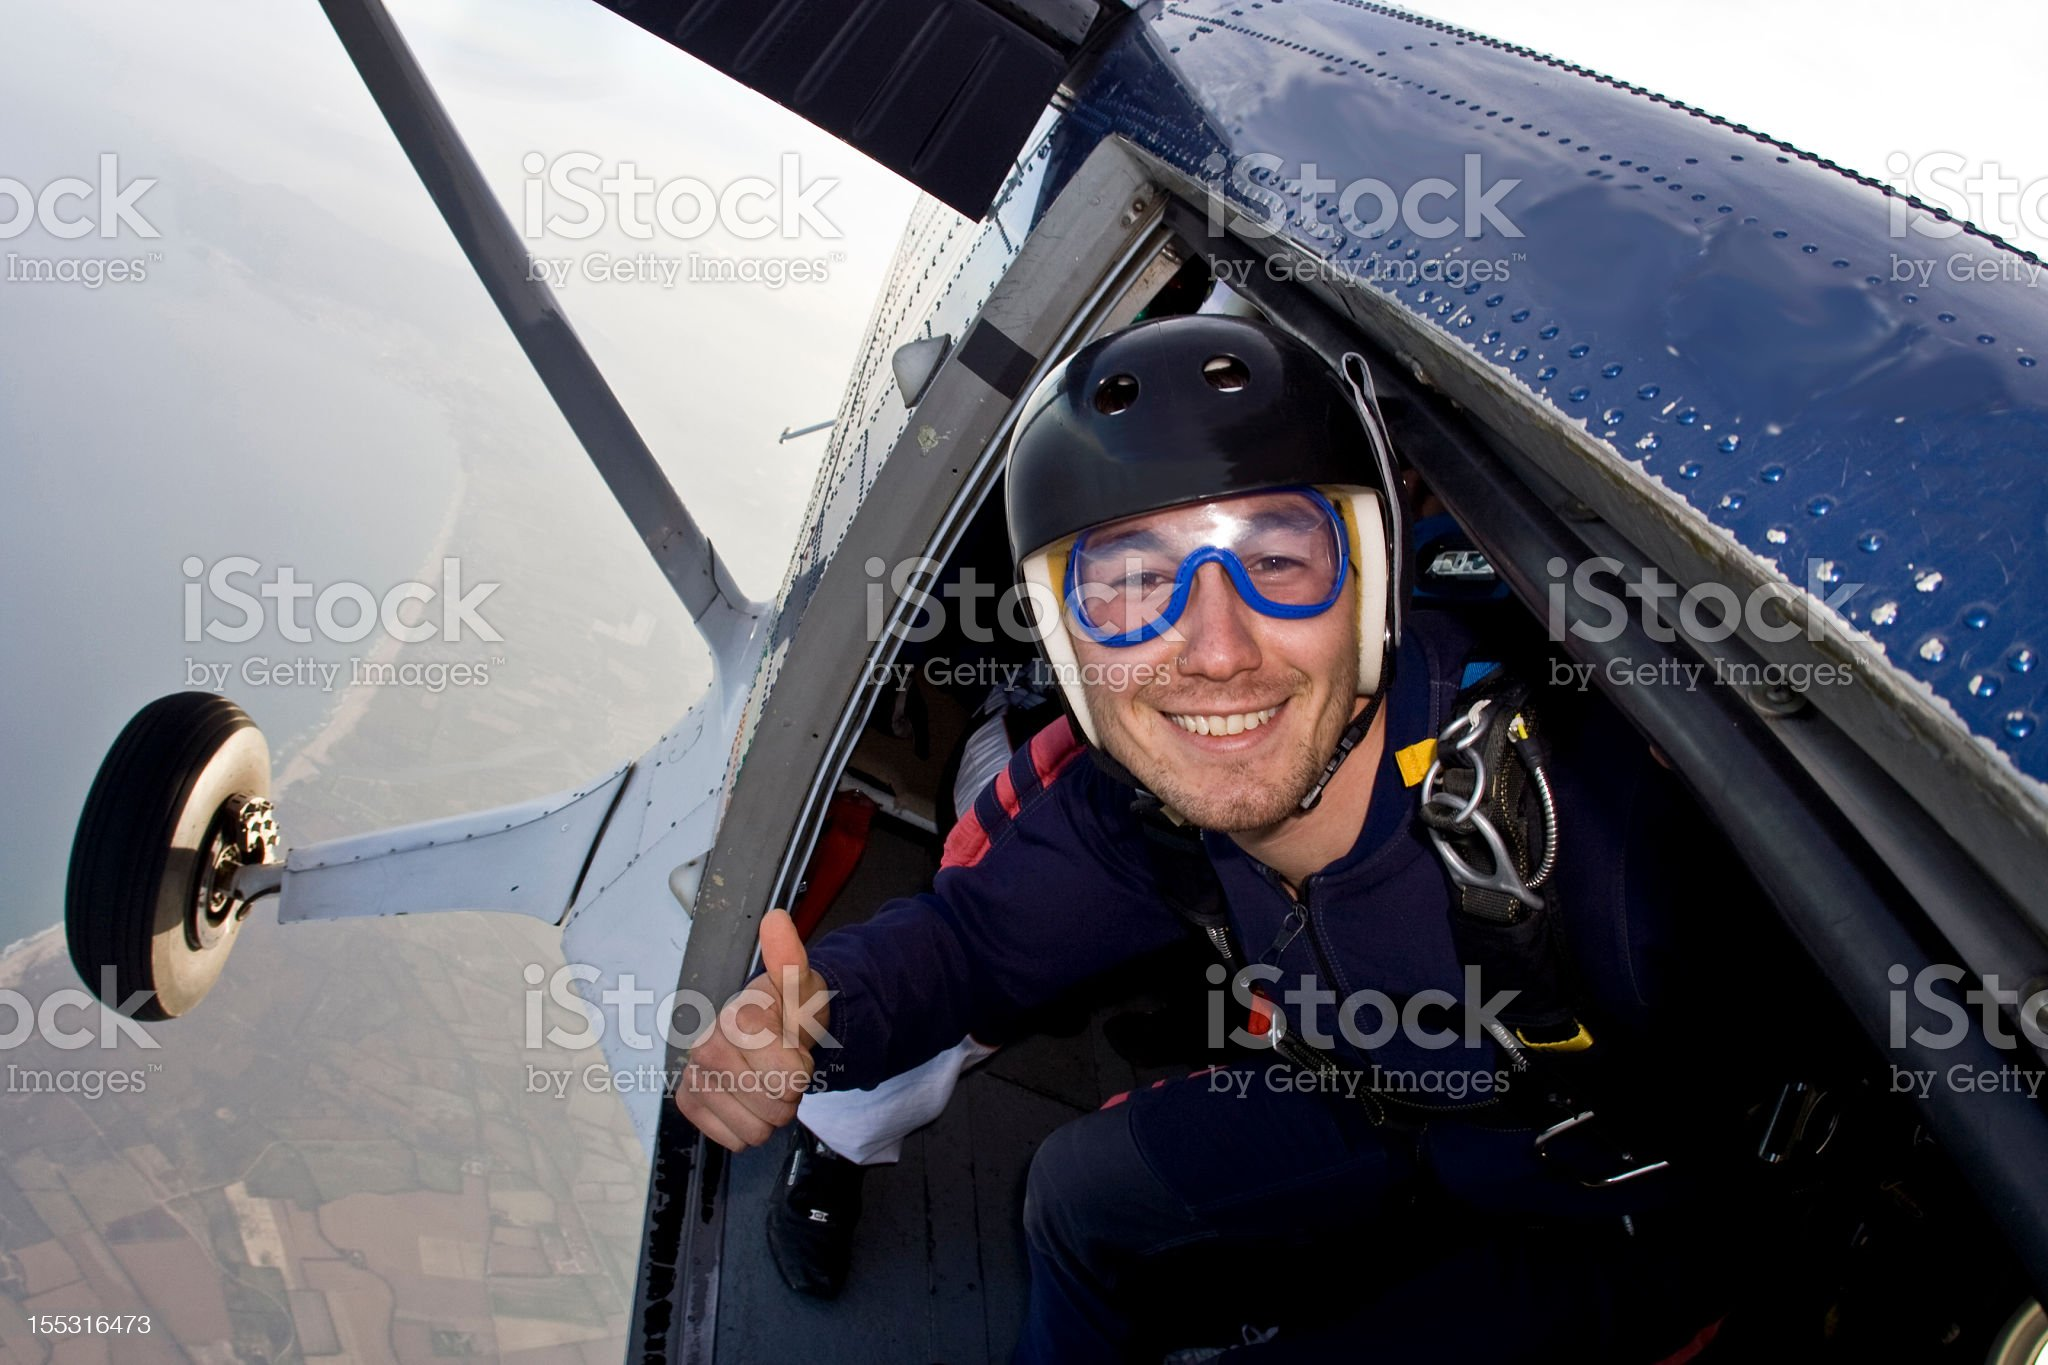 Skydiver in the door of a plane  royalty-free stock photo